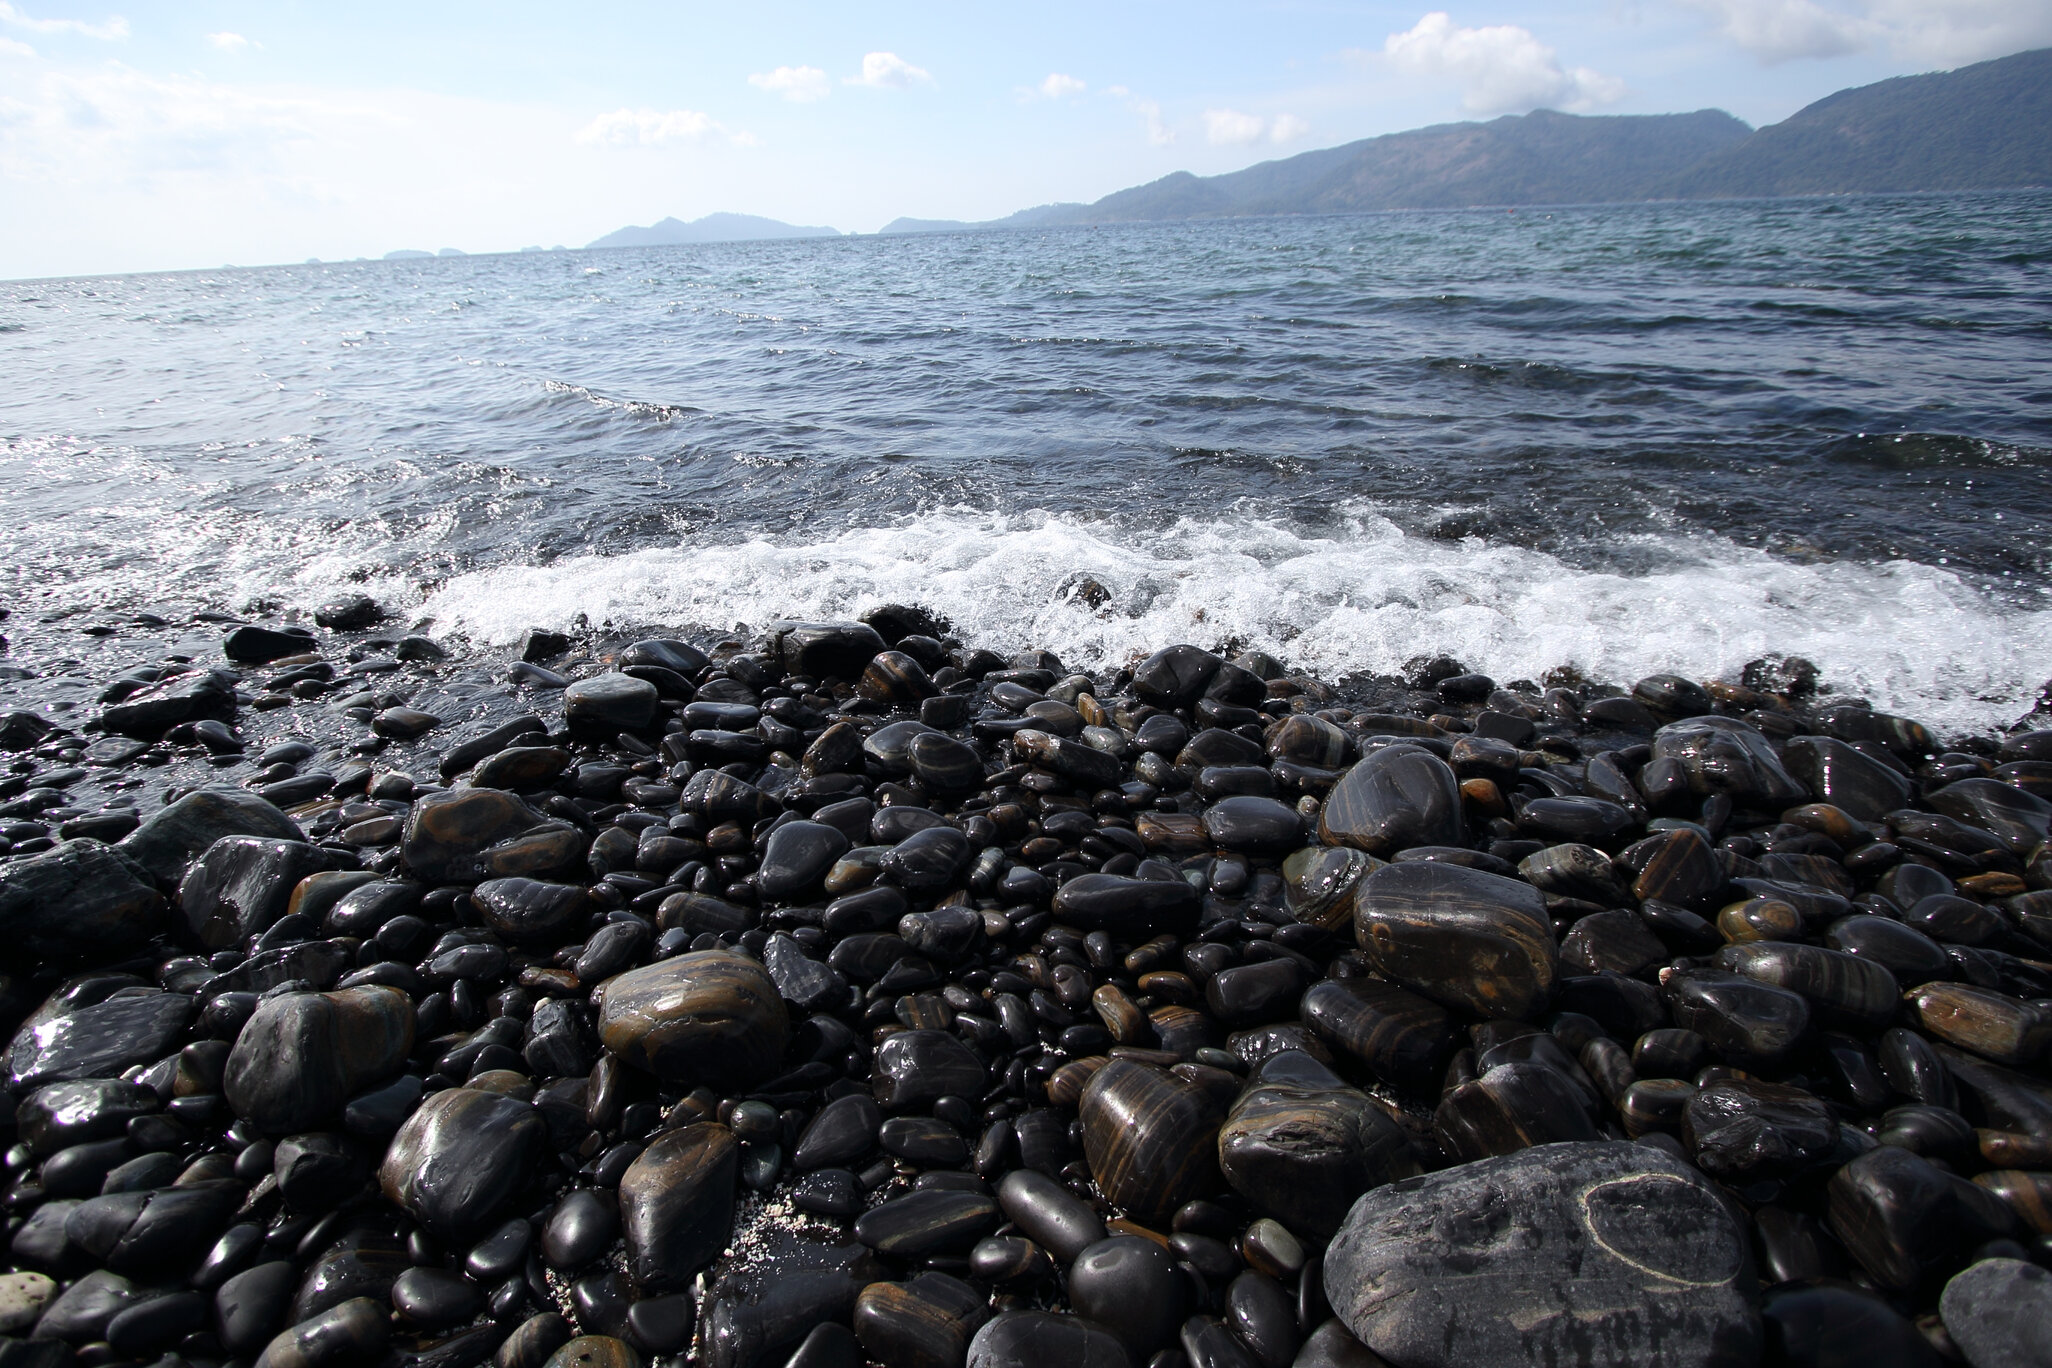 Waves crashing against black pebbles on a beach in Koh Hingham which is a haunted fishing destination